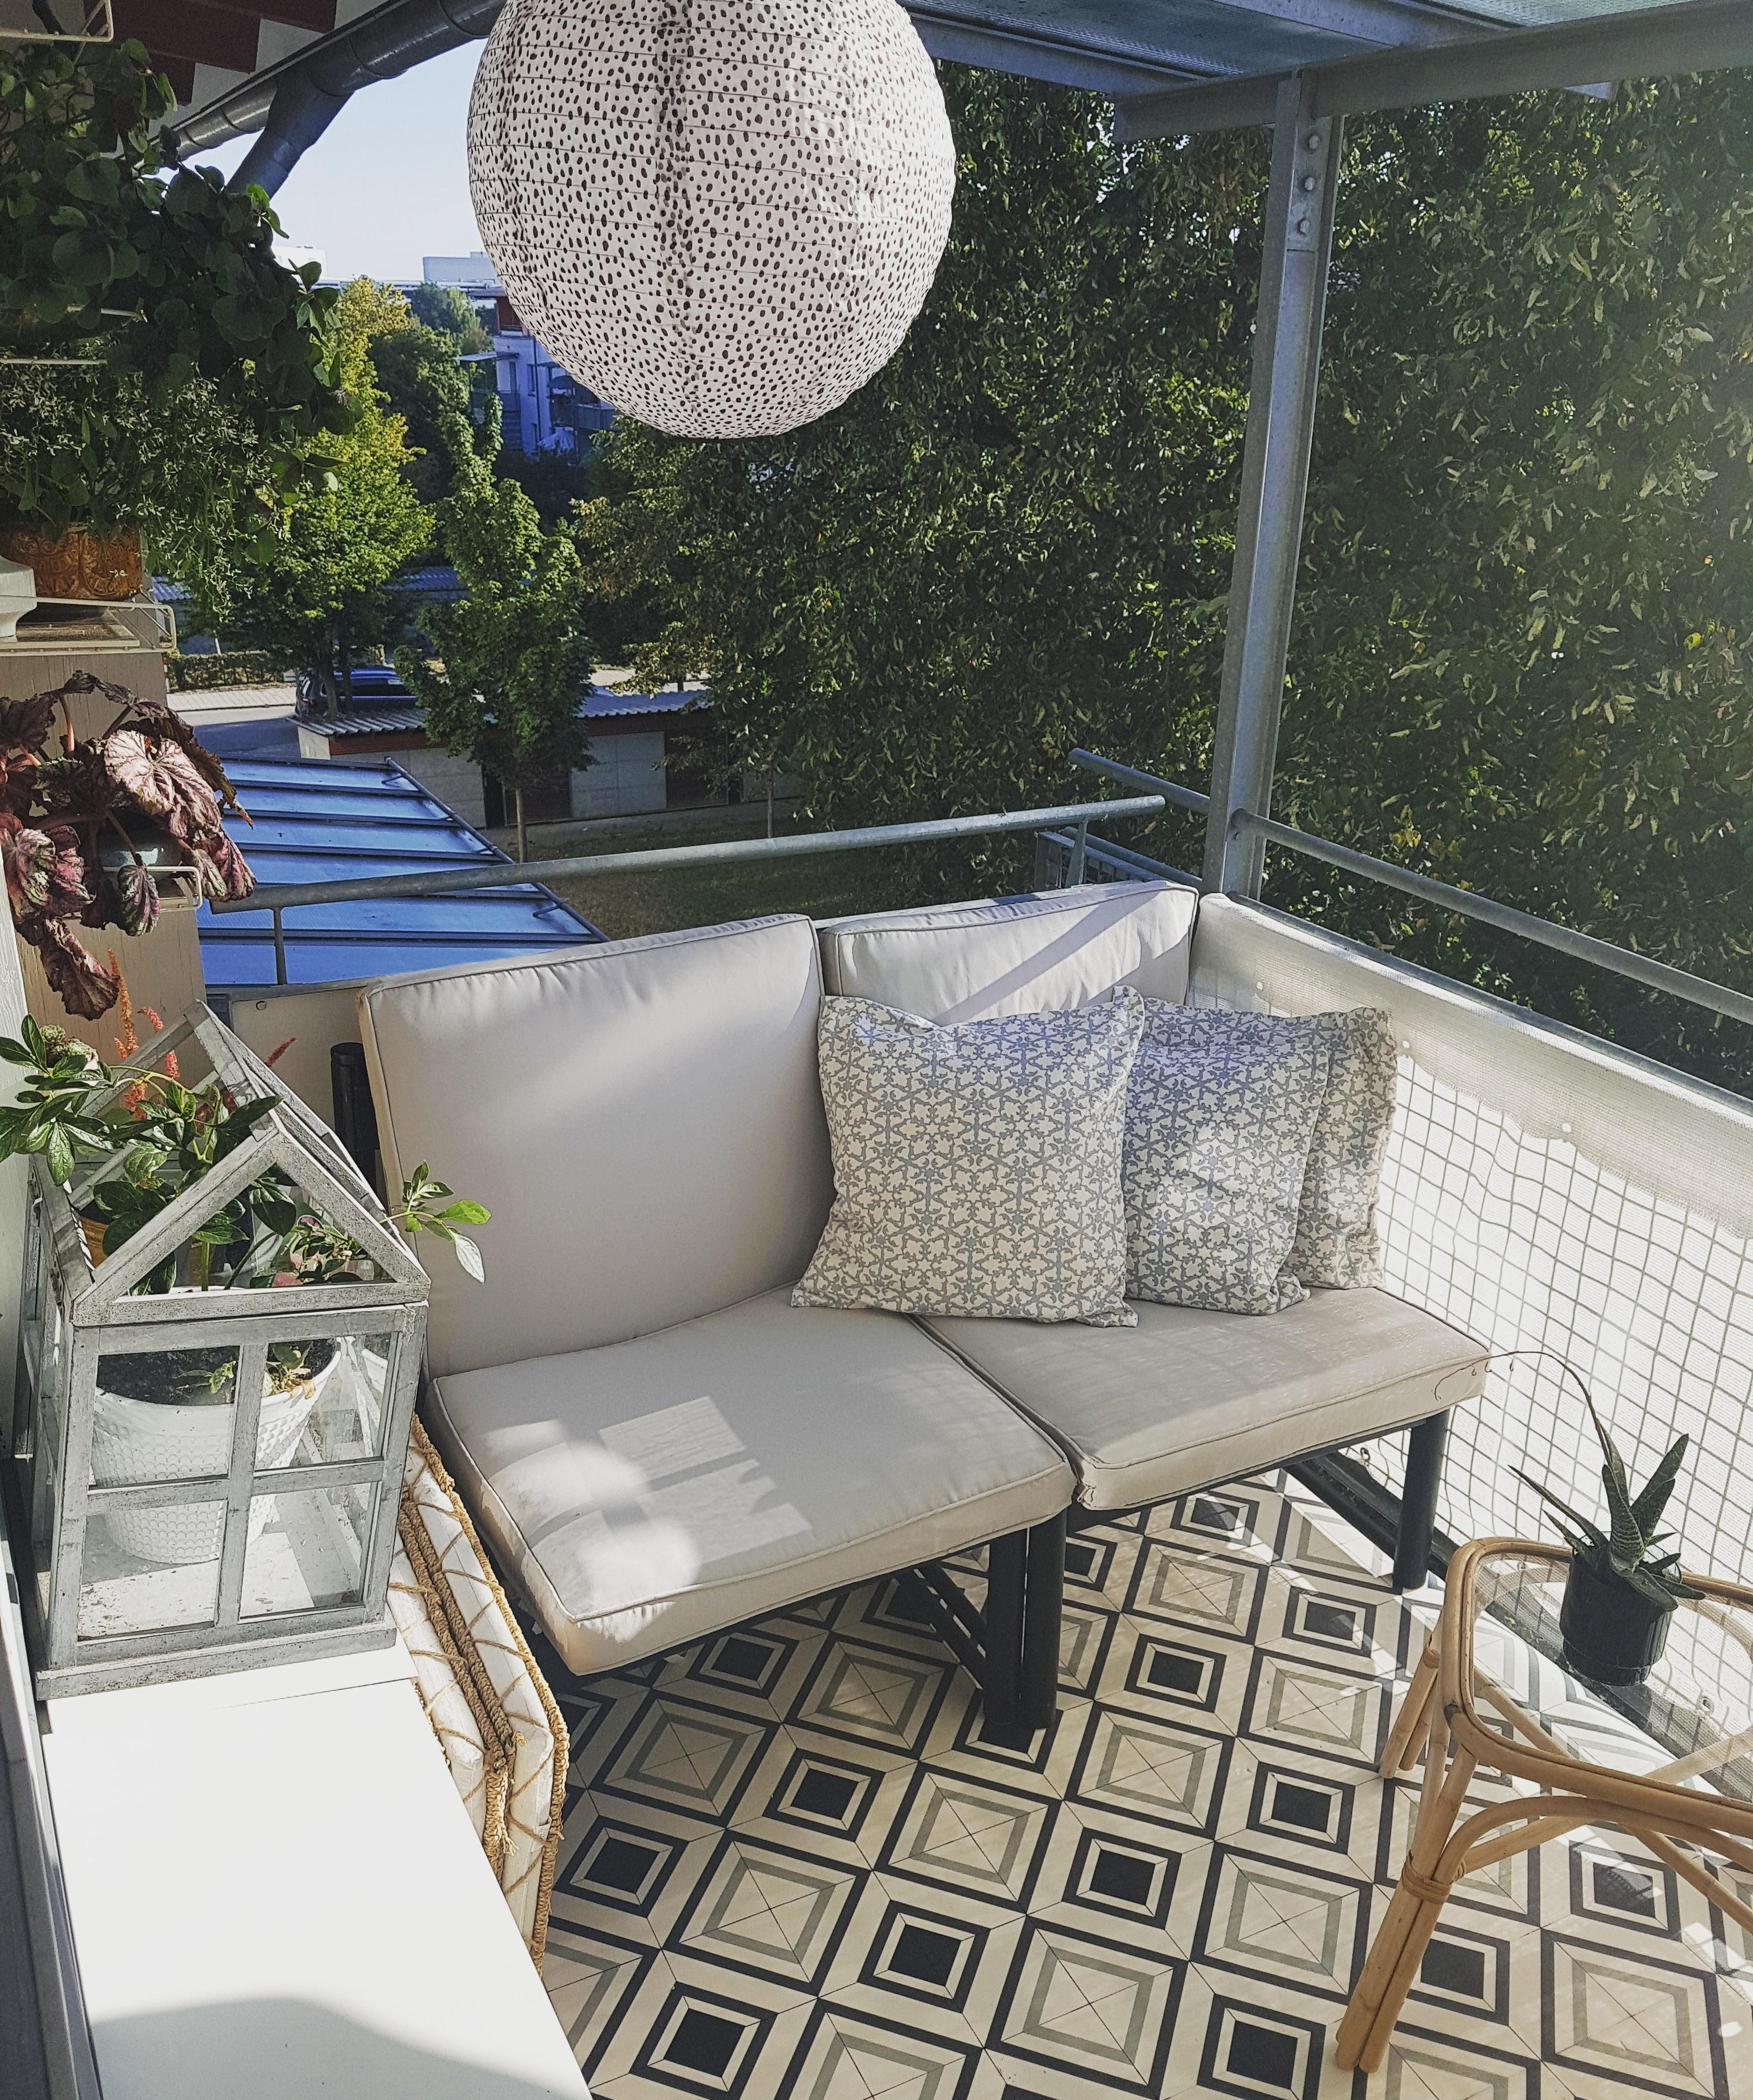 Couchliebt 2teswohnzimmer vintage balcony  749419be 9a92 4993 8ed2 a6d24e825ecf